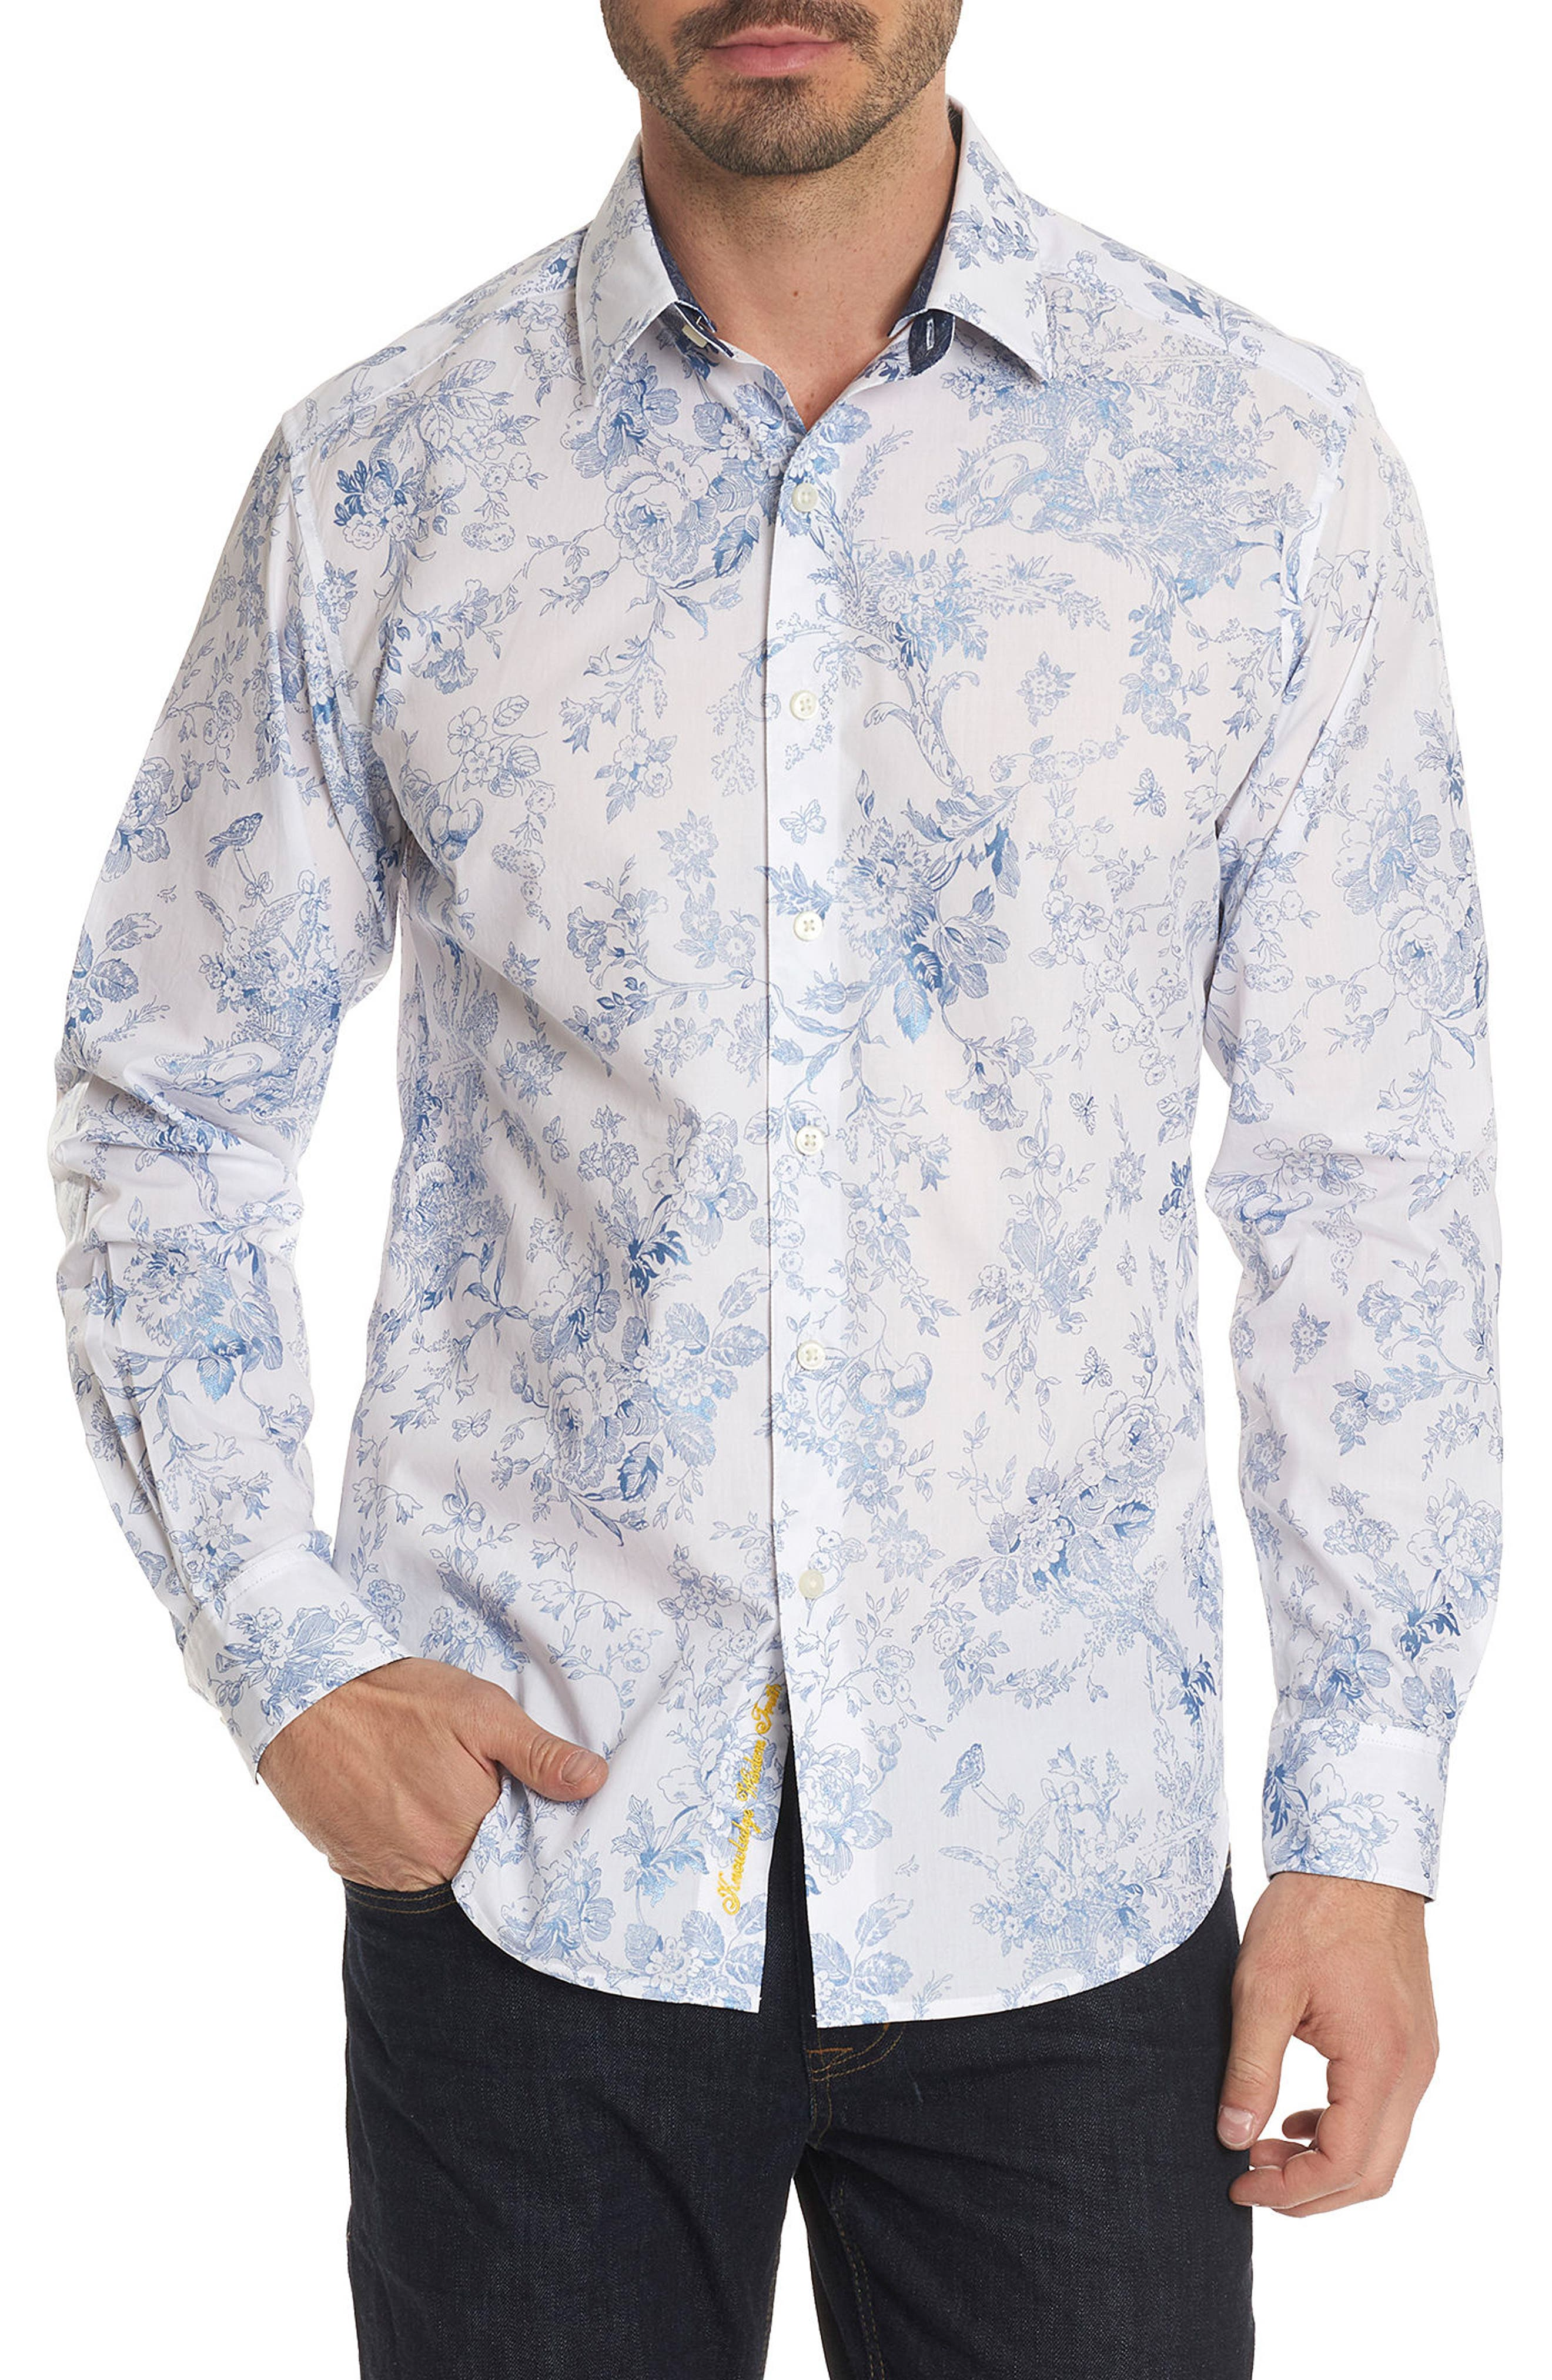 Rider Classic Fit Sport Shirt,                         Main,                         color, White